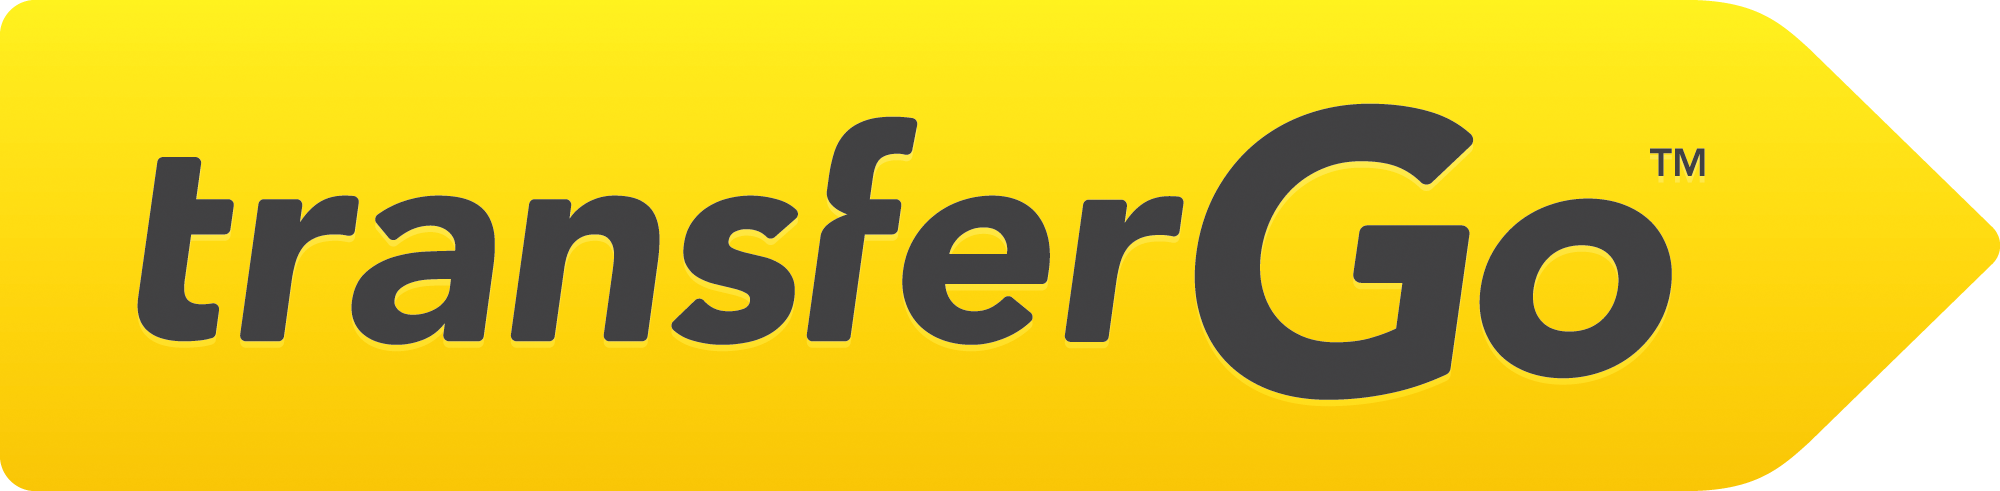 TransferGo Partners With Currencycloud To Power P2P Cross-Border Payments In 55 Markets